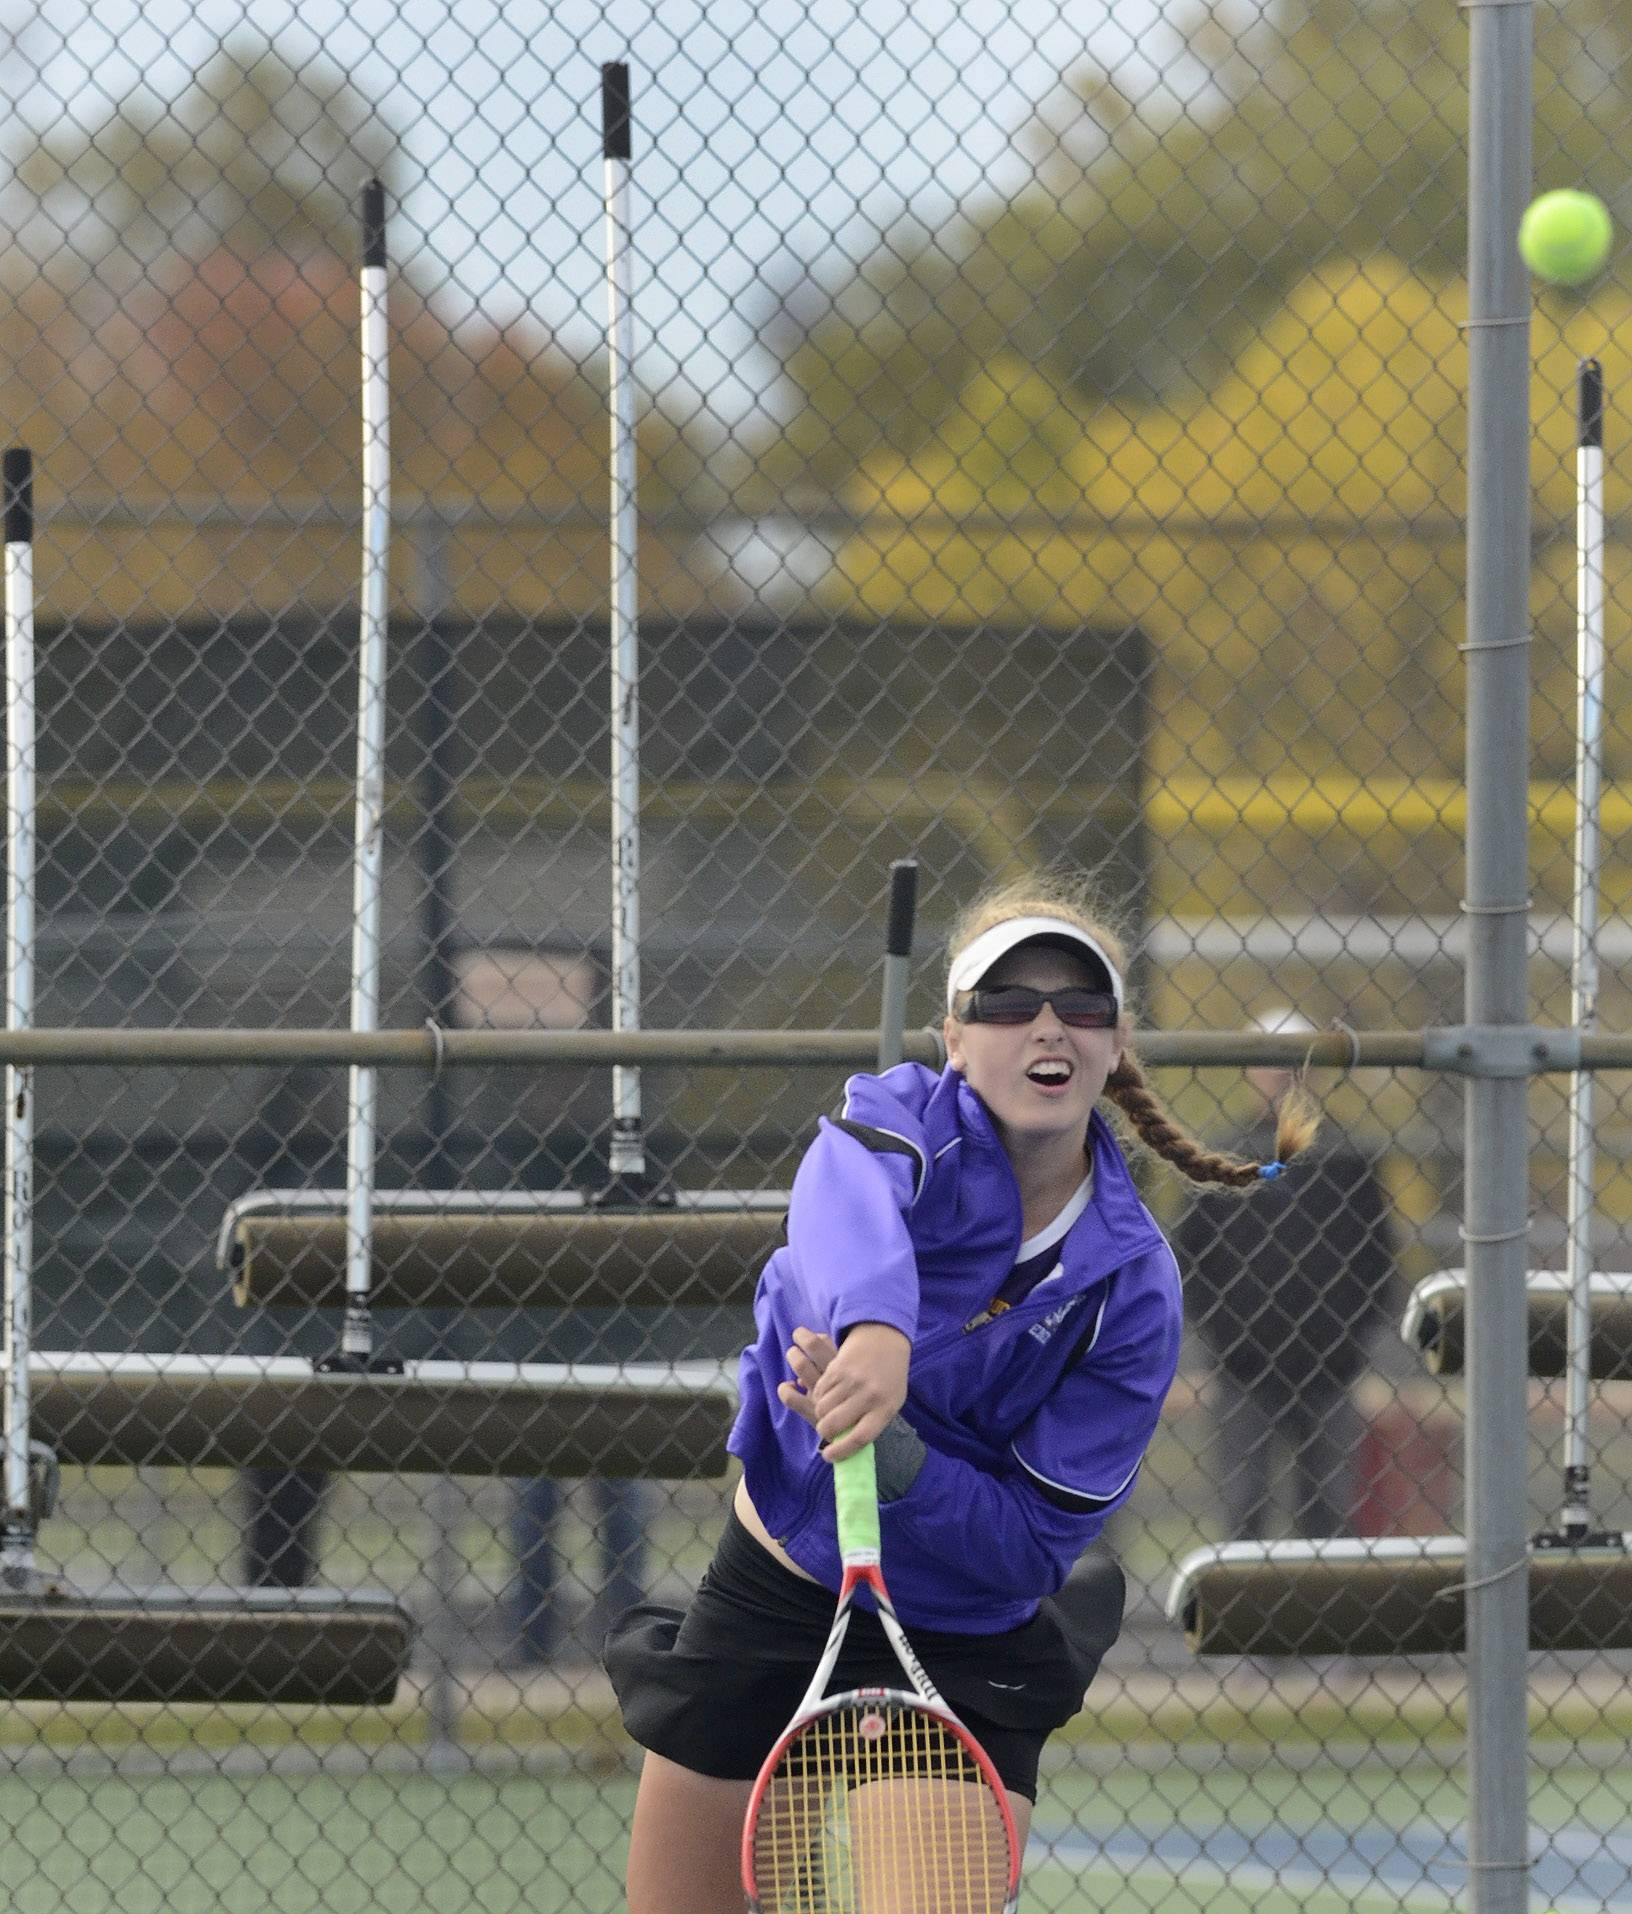 Sarah Hackman of Wauconda returns a shot form Mackenzie Beckham of Whitney Young during first-round action of the girls tennis state tournament at Palatine High School.